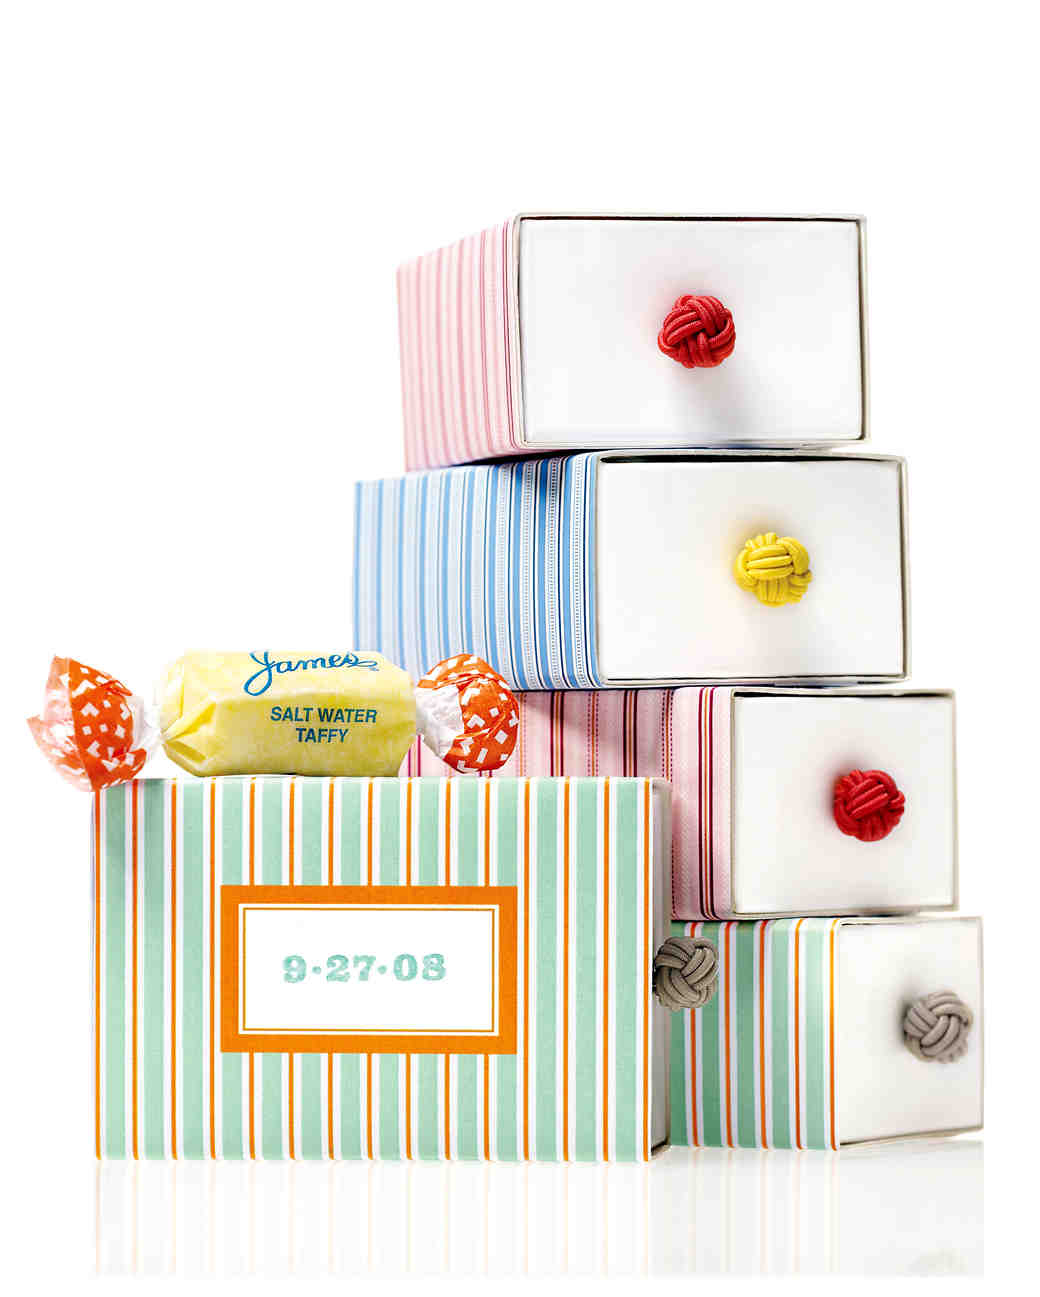 Wedding Gift Box Ideas: 40 Gift-Box Ideas To Hold Your Wedding Favors In Style